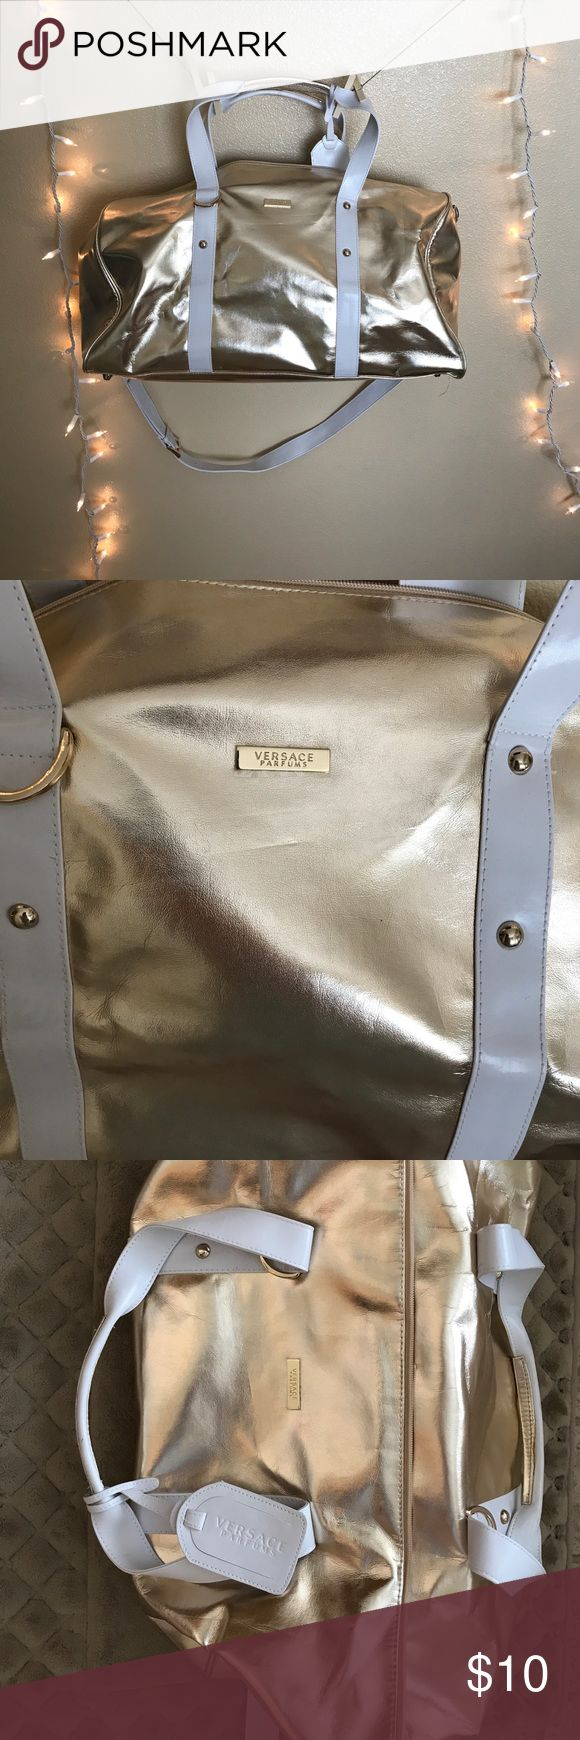 Versace duffle overnight bag Gold Gold and white Versace overnight duffle bag. Perfect for traveling. You could fit so much stuff in this bag. Basically brand new. Never used Versace Bags Travel Bags